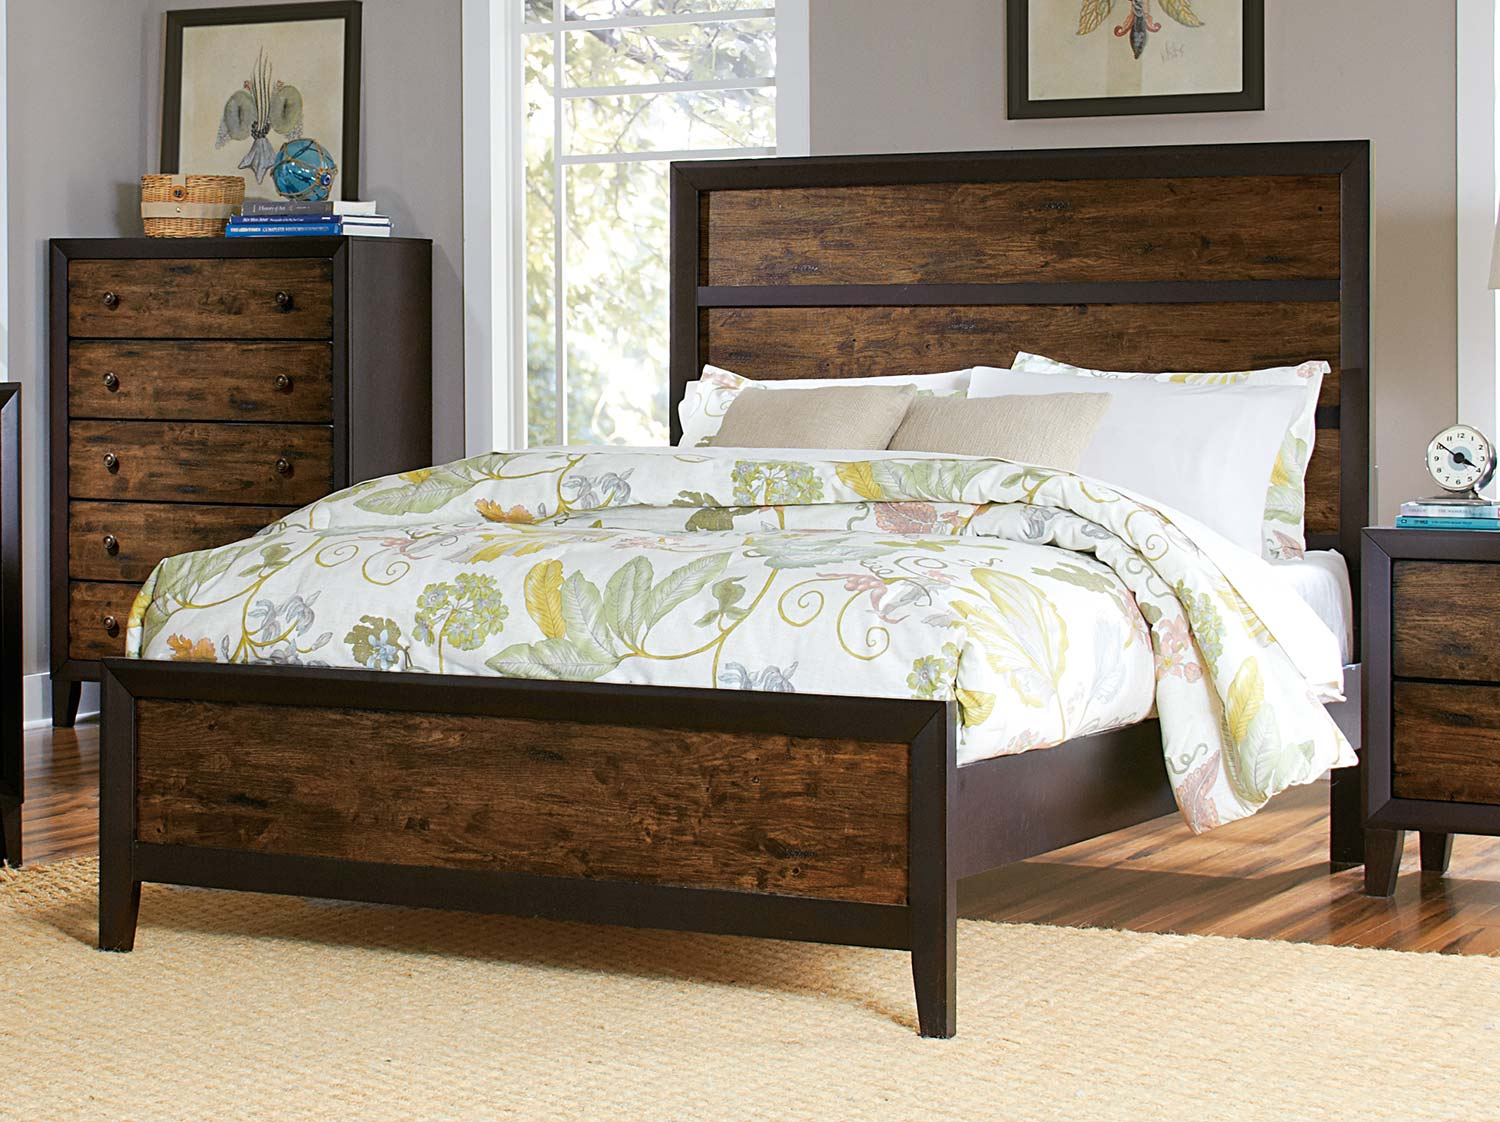 Homelegance Arcola Bed - Espresso/Drifted Oak